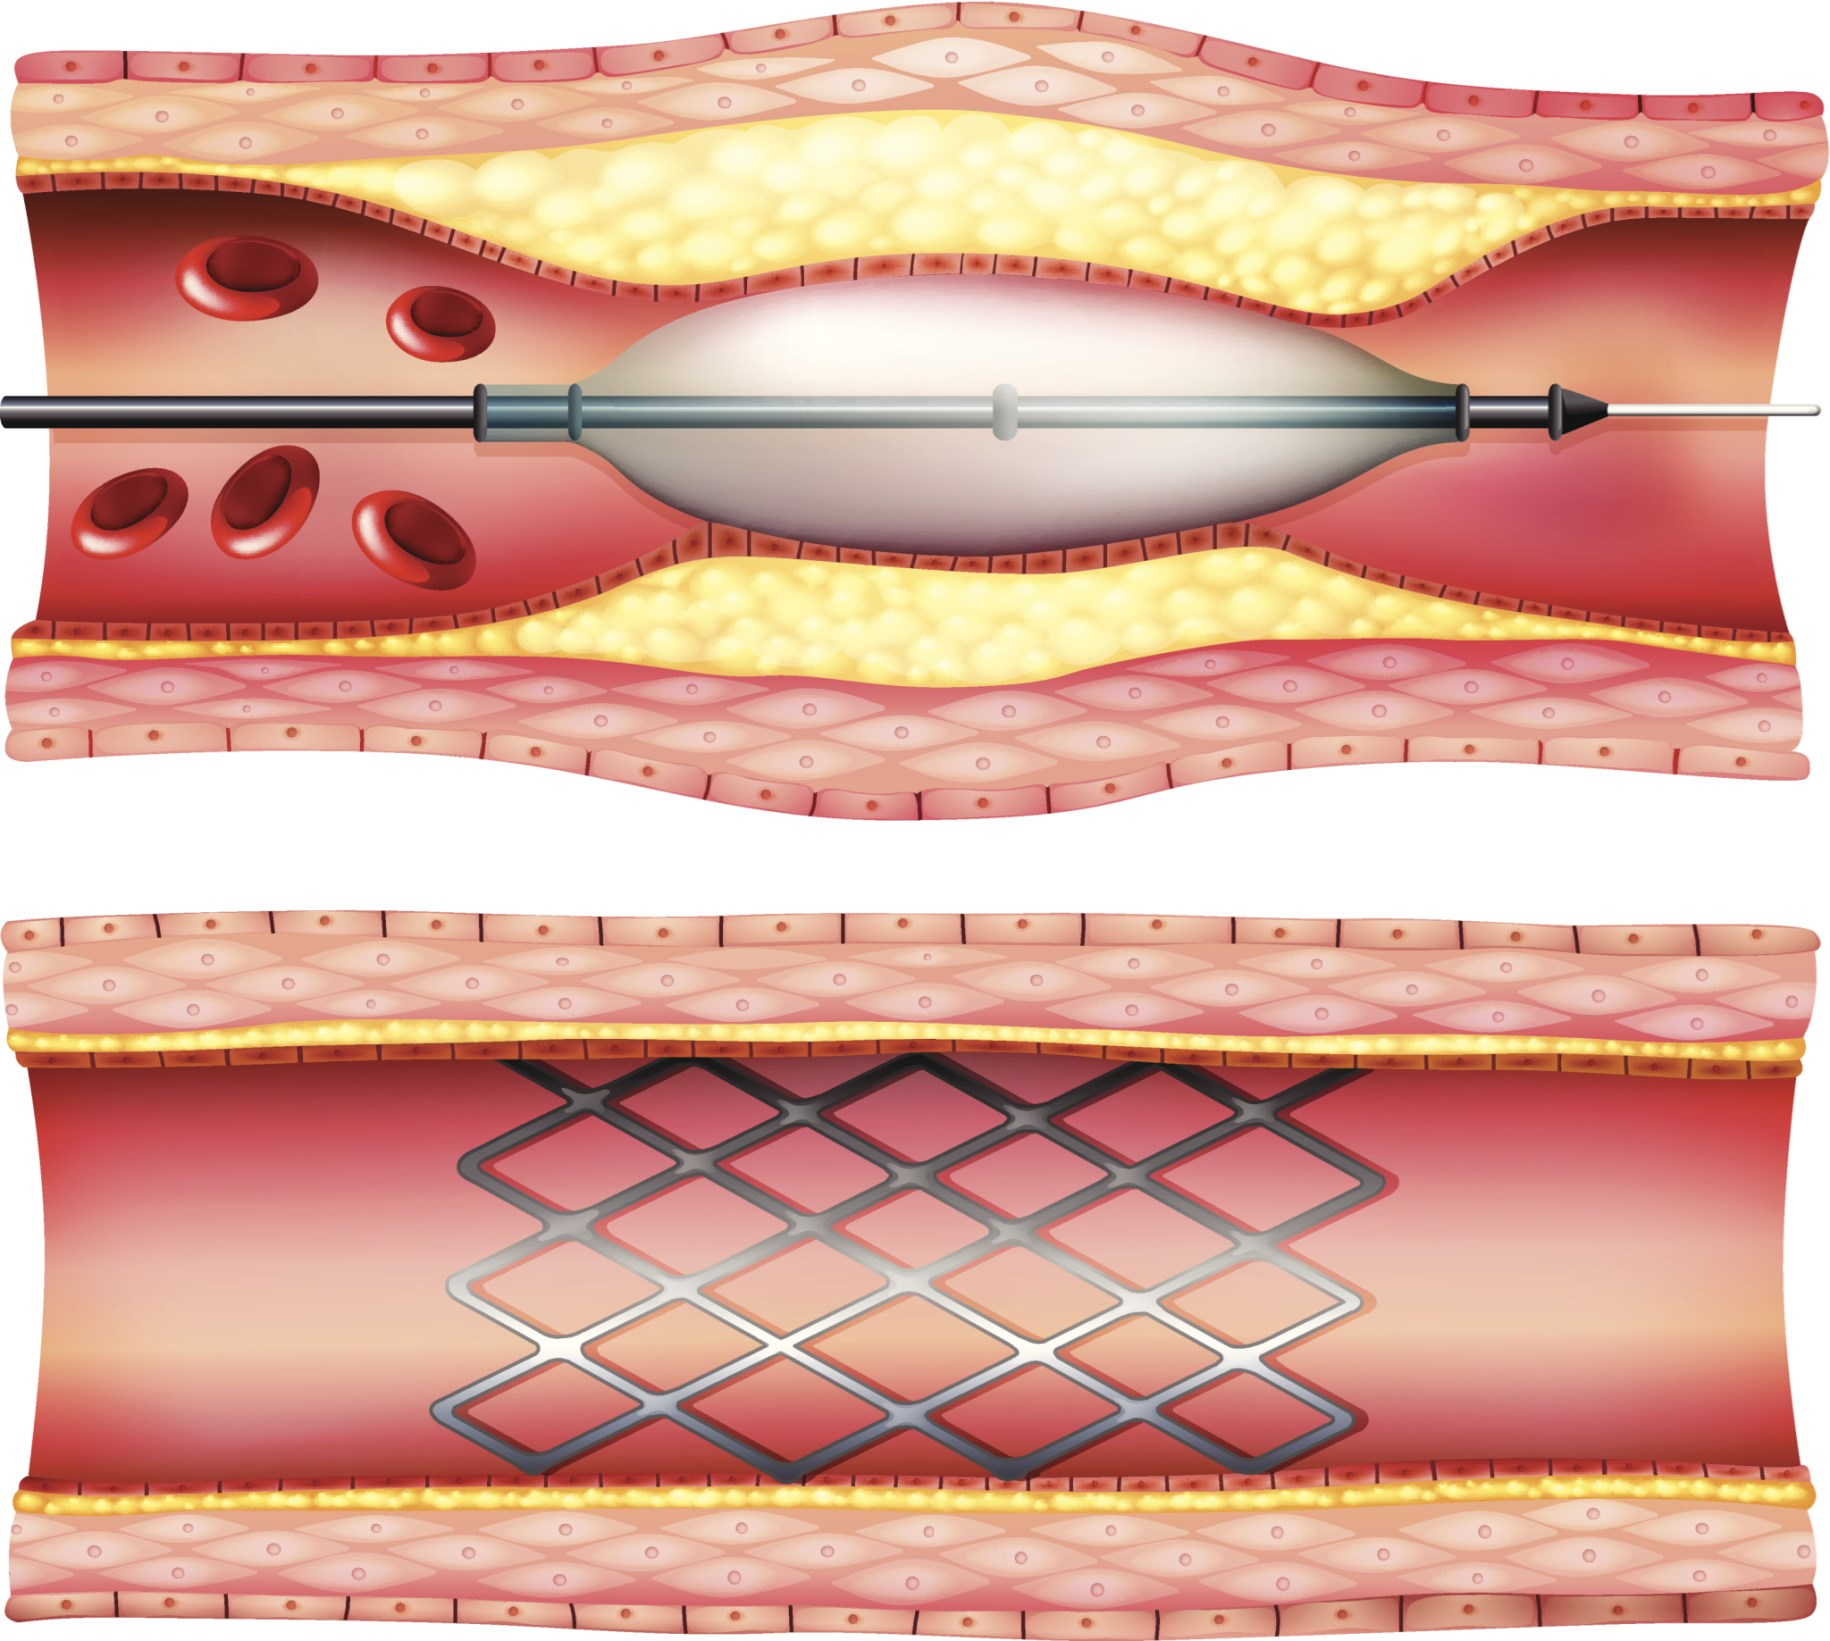 Advances in technology have shaped interventional cardiology practices.